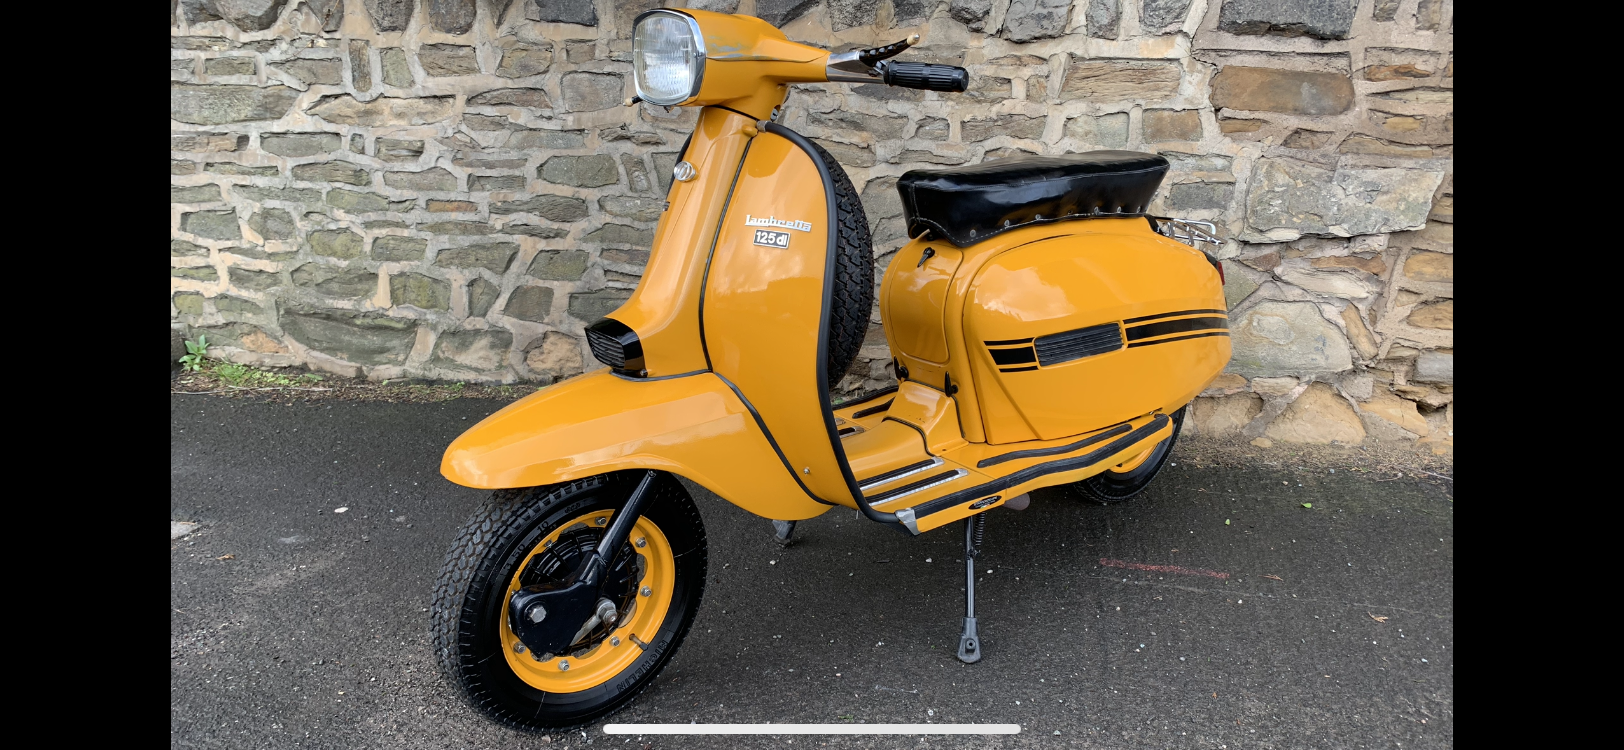 1969 Gp 125 For Sale (picture 1 of 6)